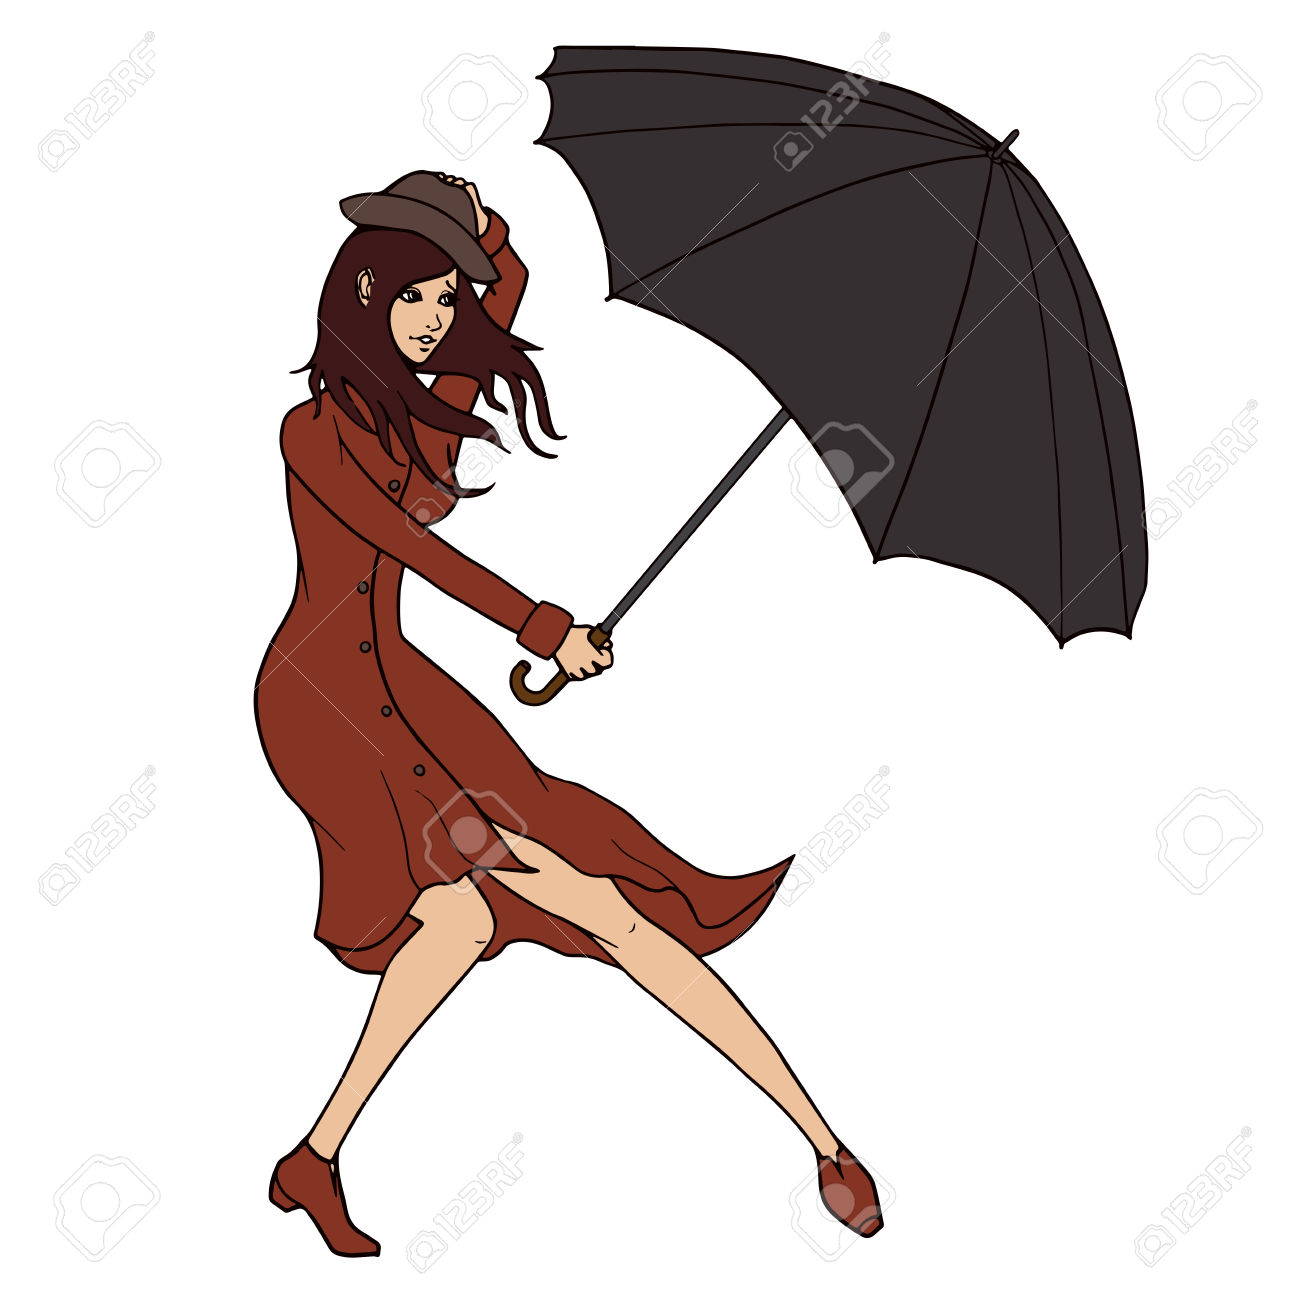 Young Woman Holding An Umbrella Against The Wind Illustration.